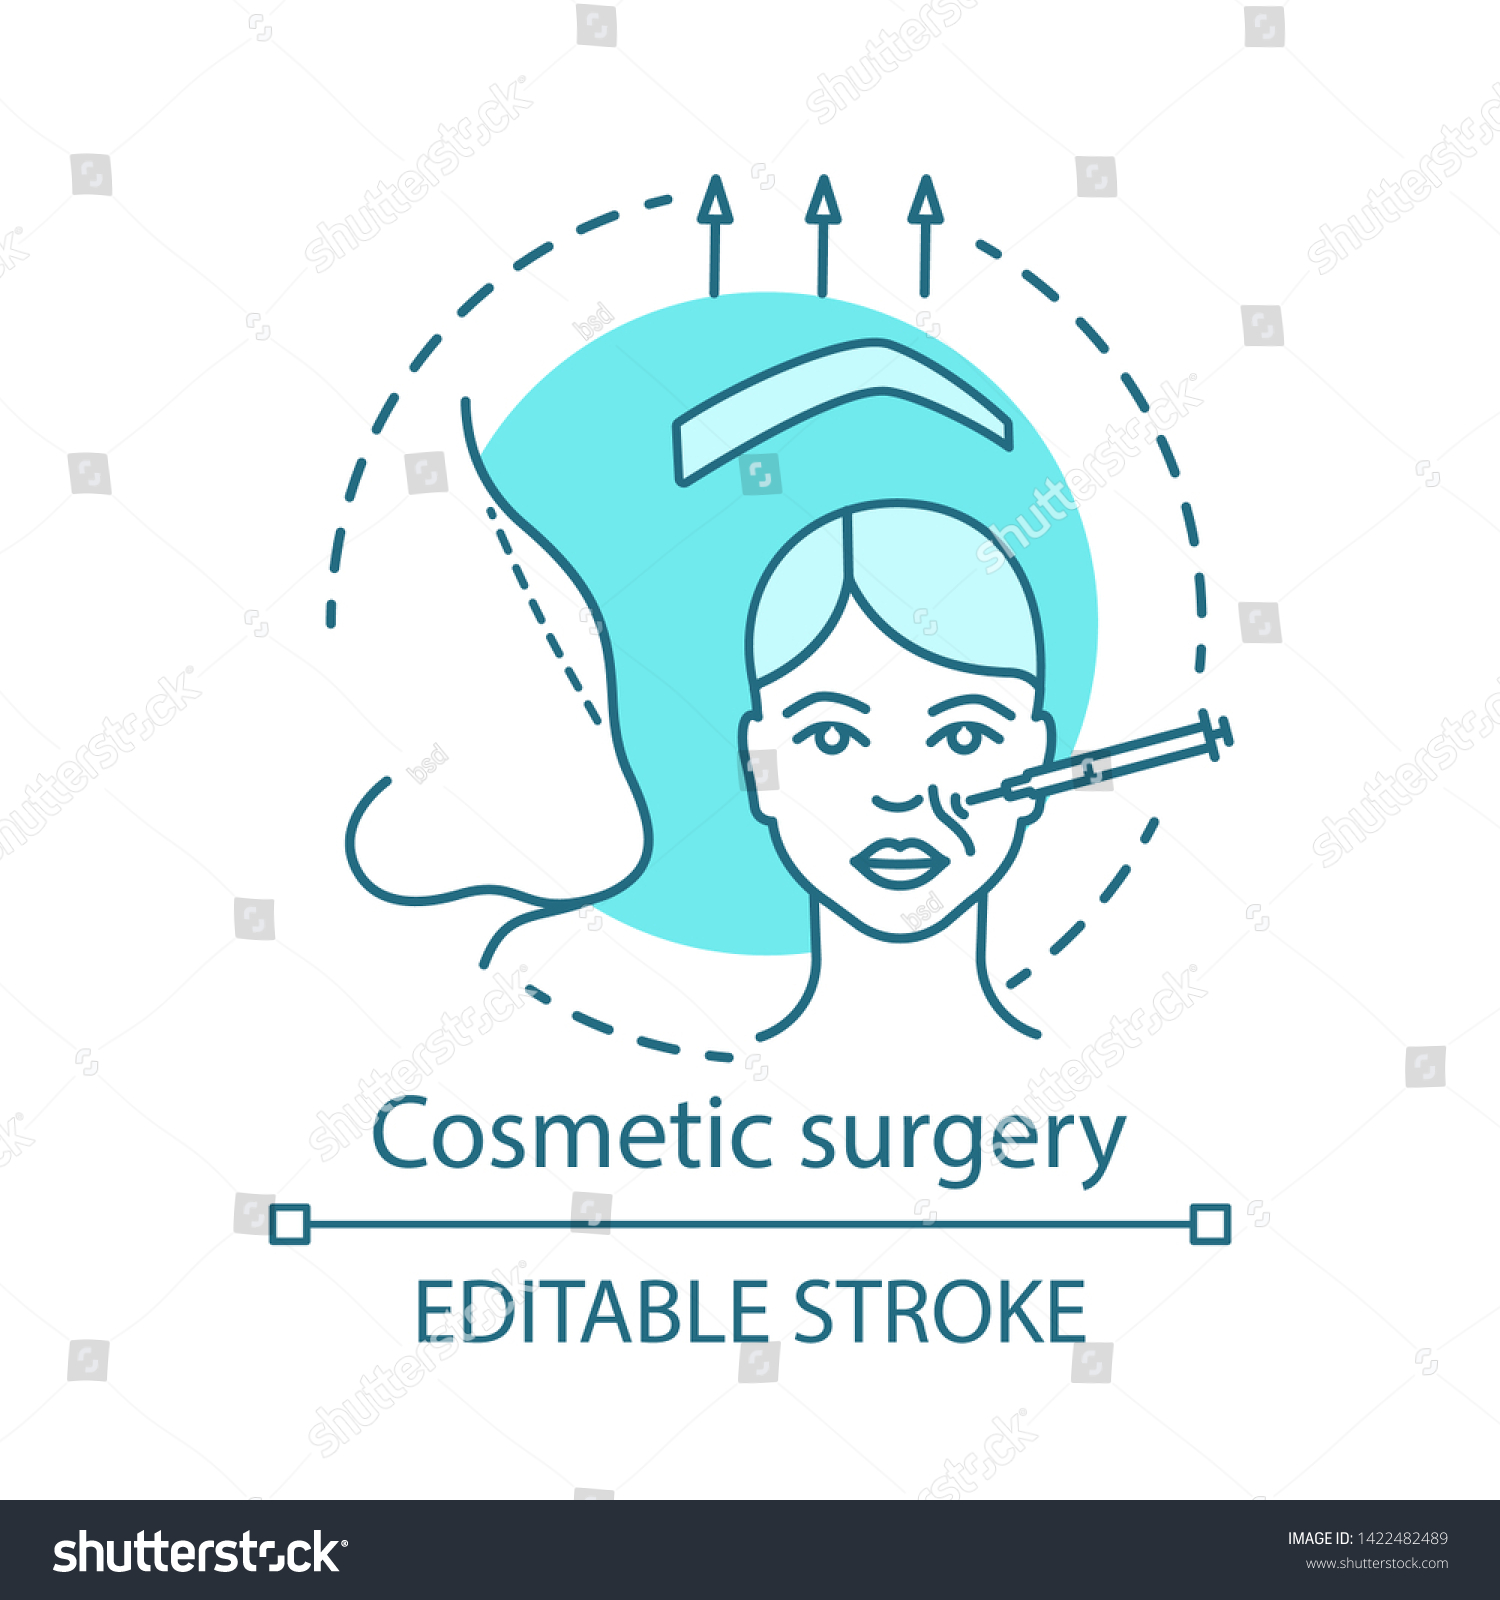 Cosmetic Surgery Concept Icon Person Appearance Stock Vector Royalty Free 1422482489 ✓ free for commercial use ✓ high quality images. shutterstock